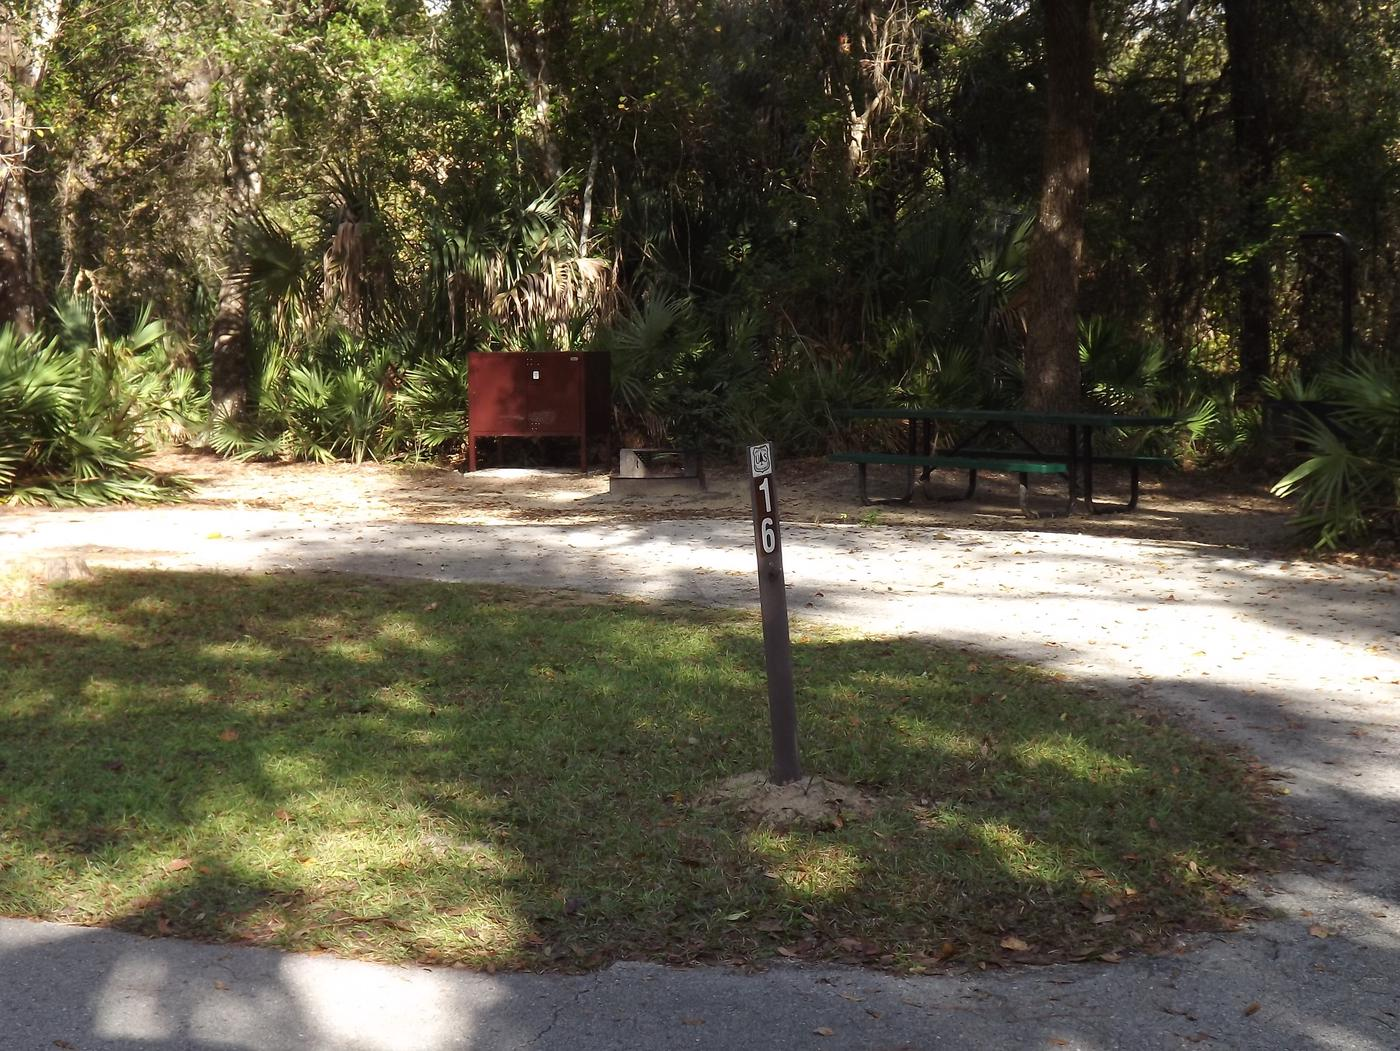 Juniper Springs Recreation Area site #16 tropical setting with picnic area and camping space.